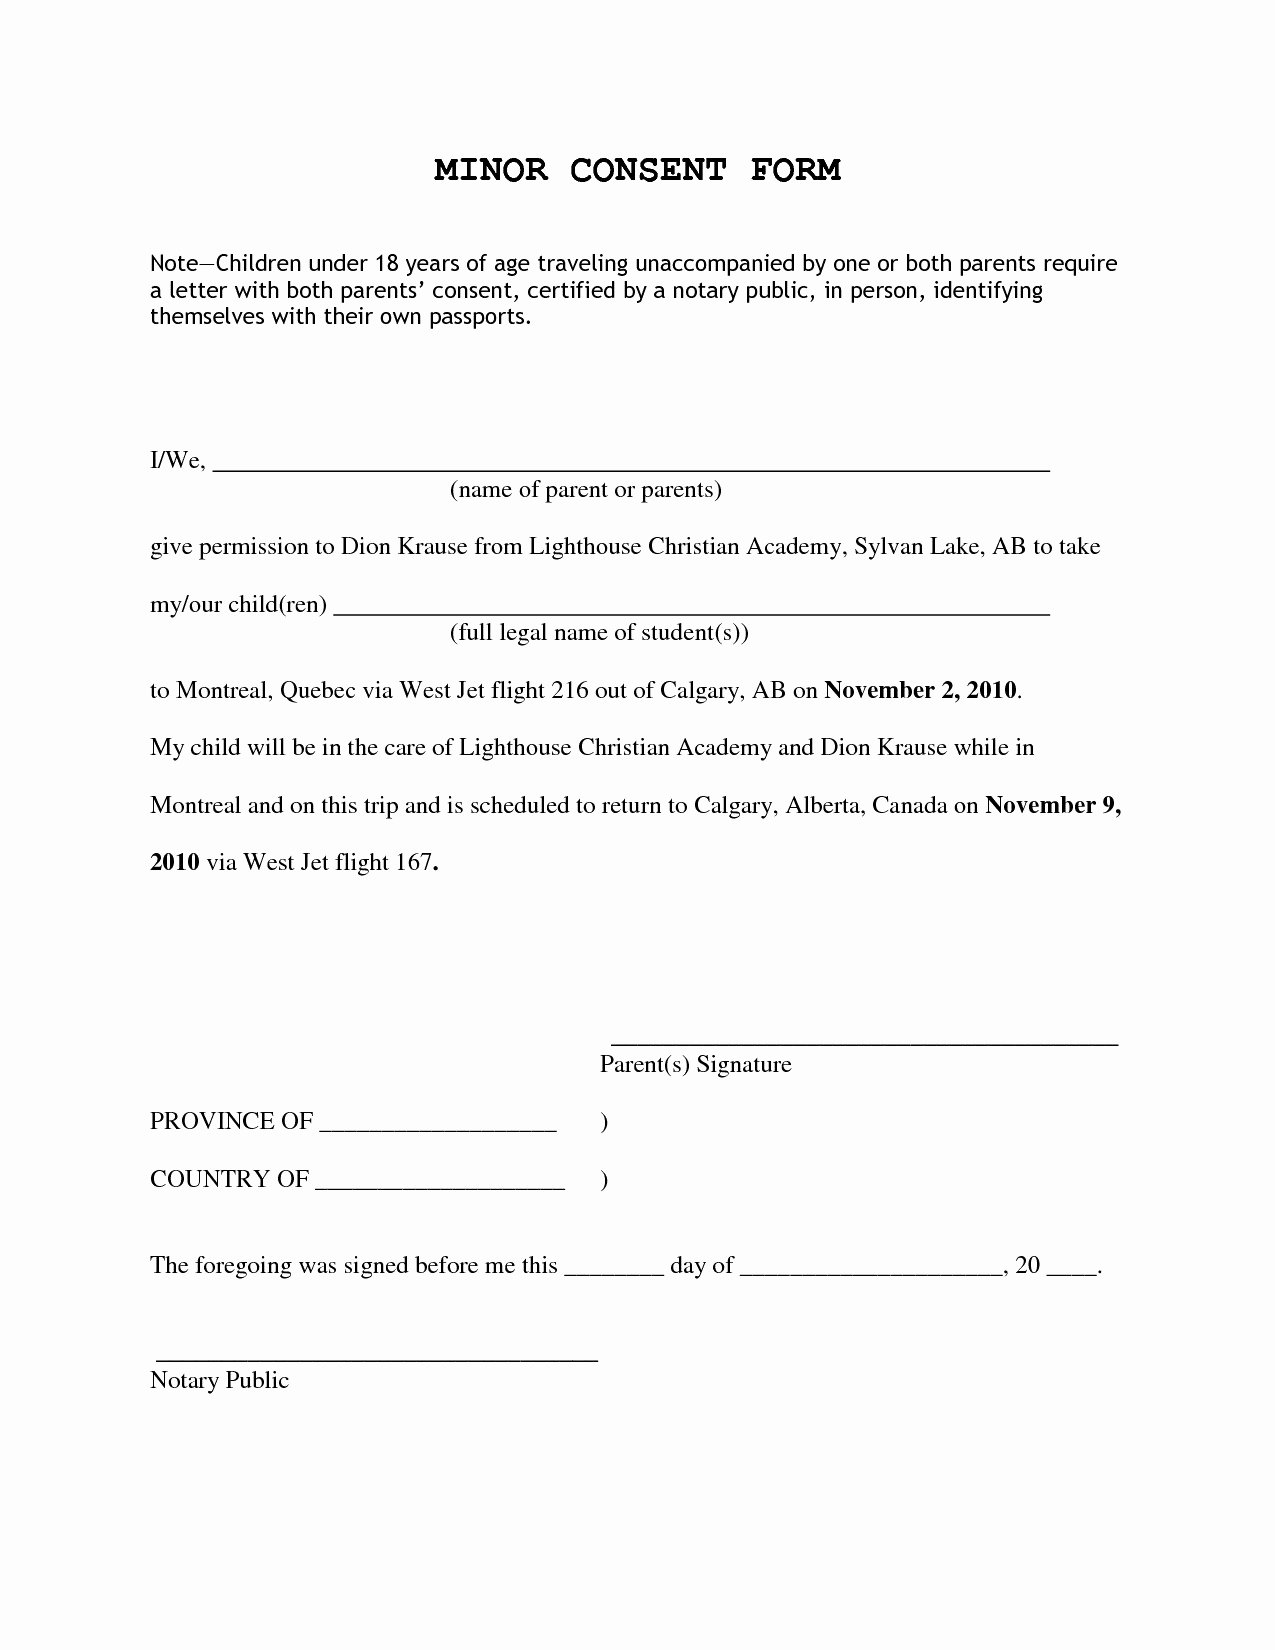 Parental Consent form Template Travel Best Of Letter Consent for Travel A Minor Child Template